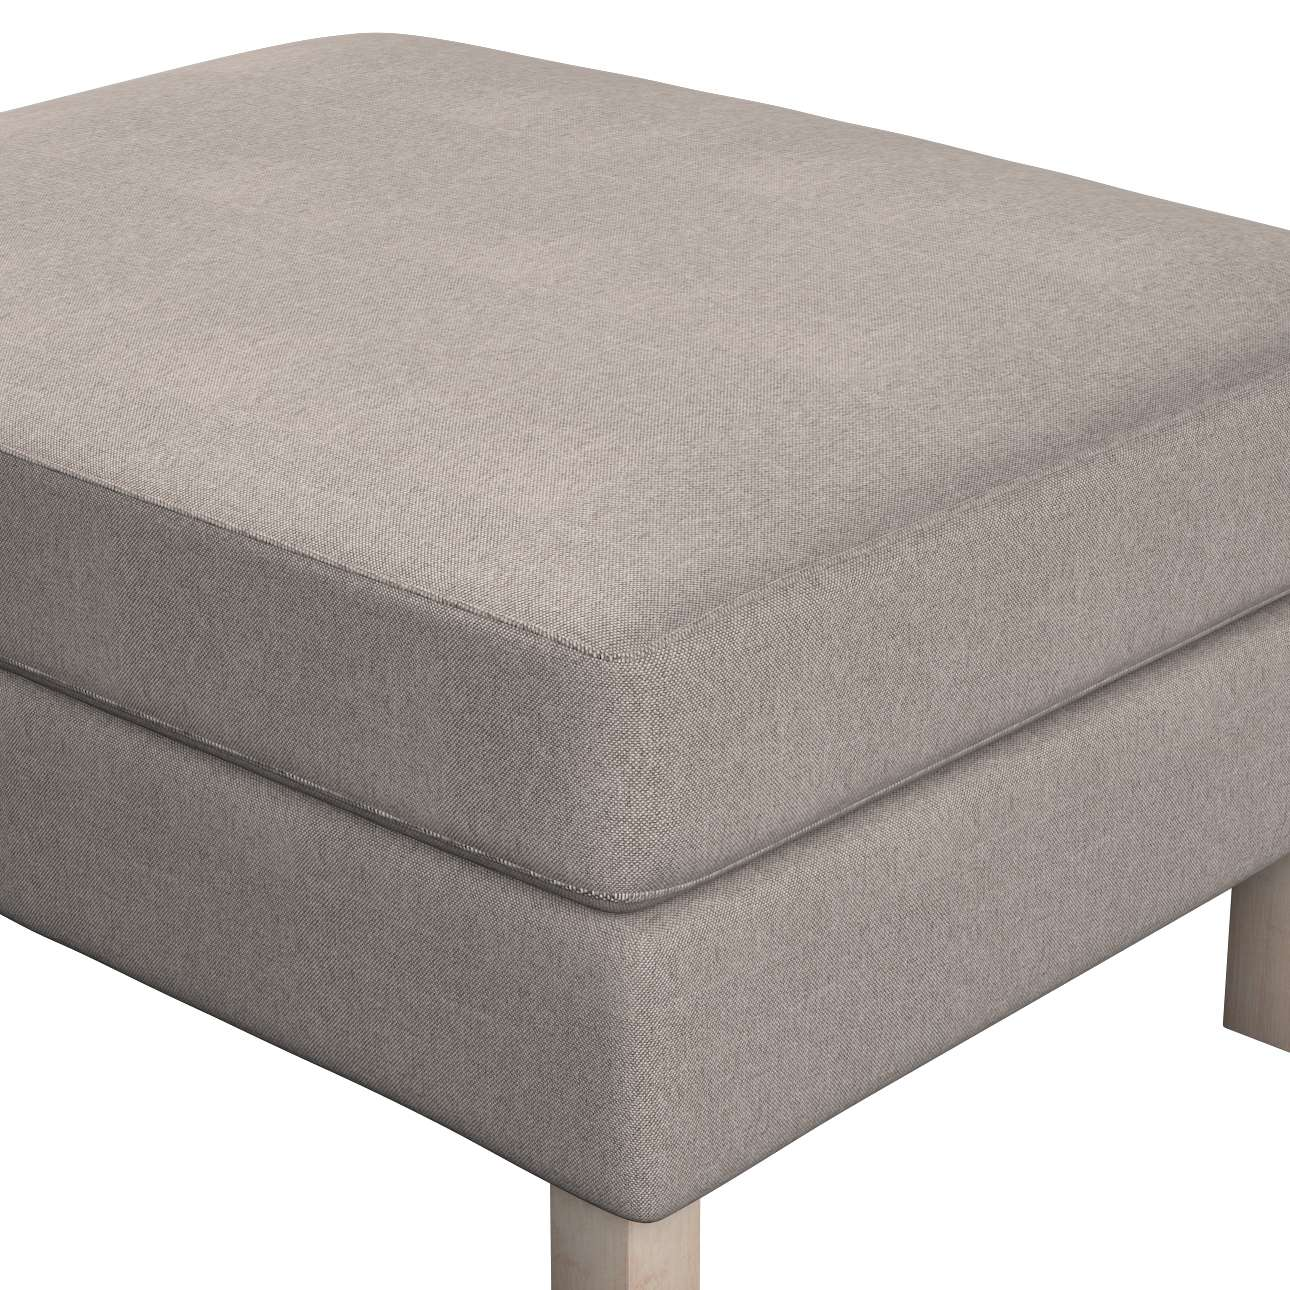 Karlstad footstool cover in collection Etna, fabric: 705-09